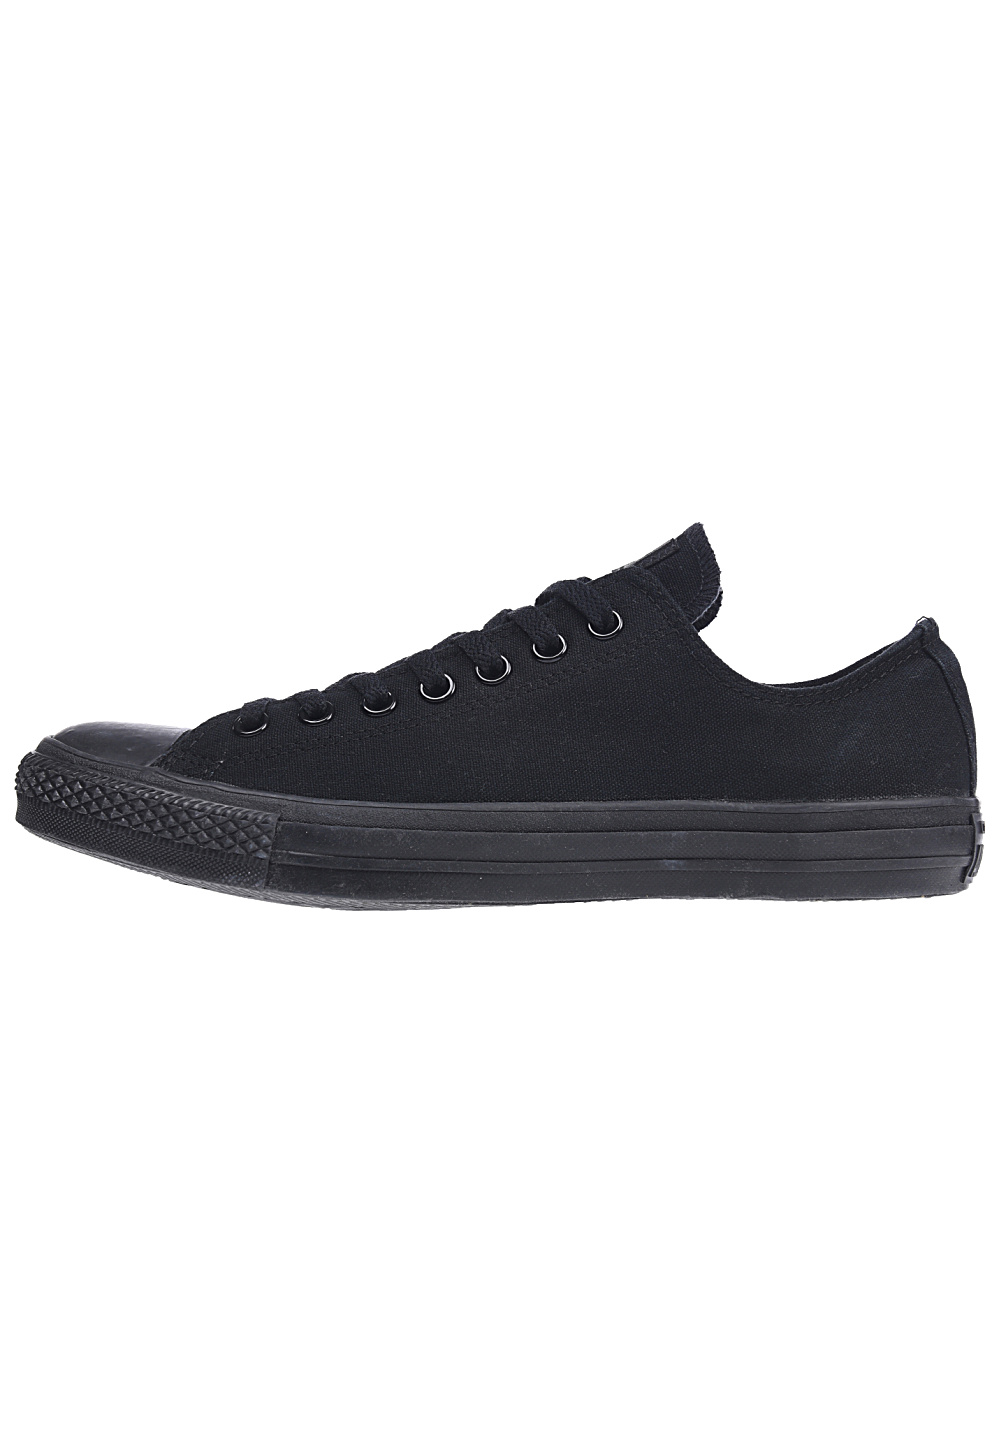 converse all star zwart